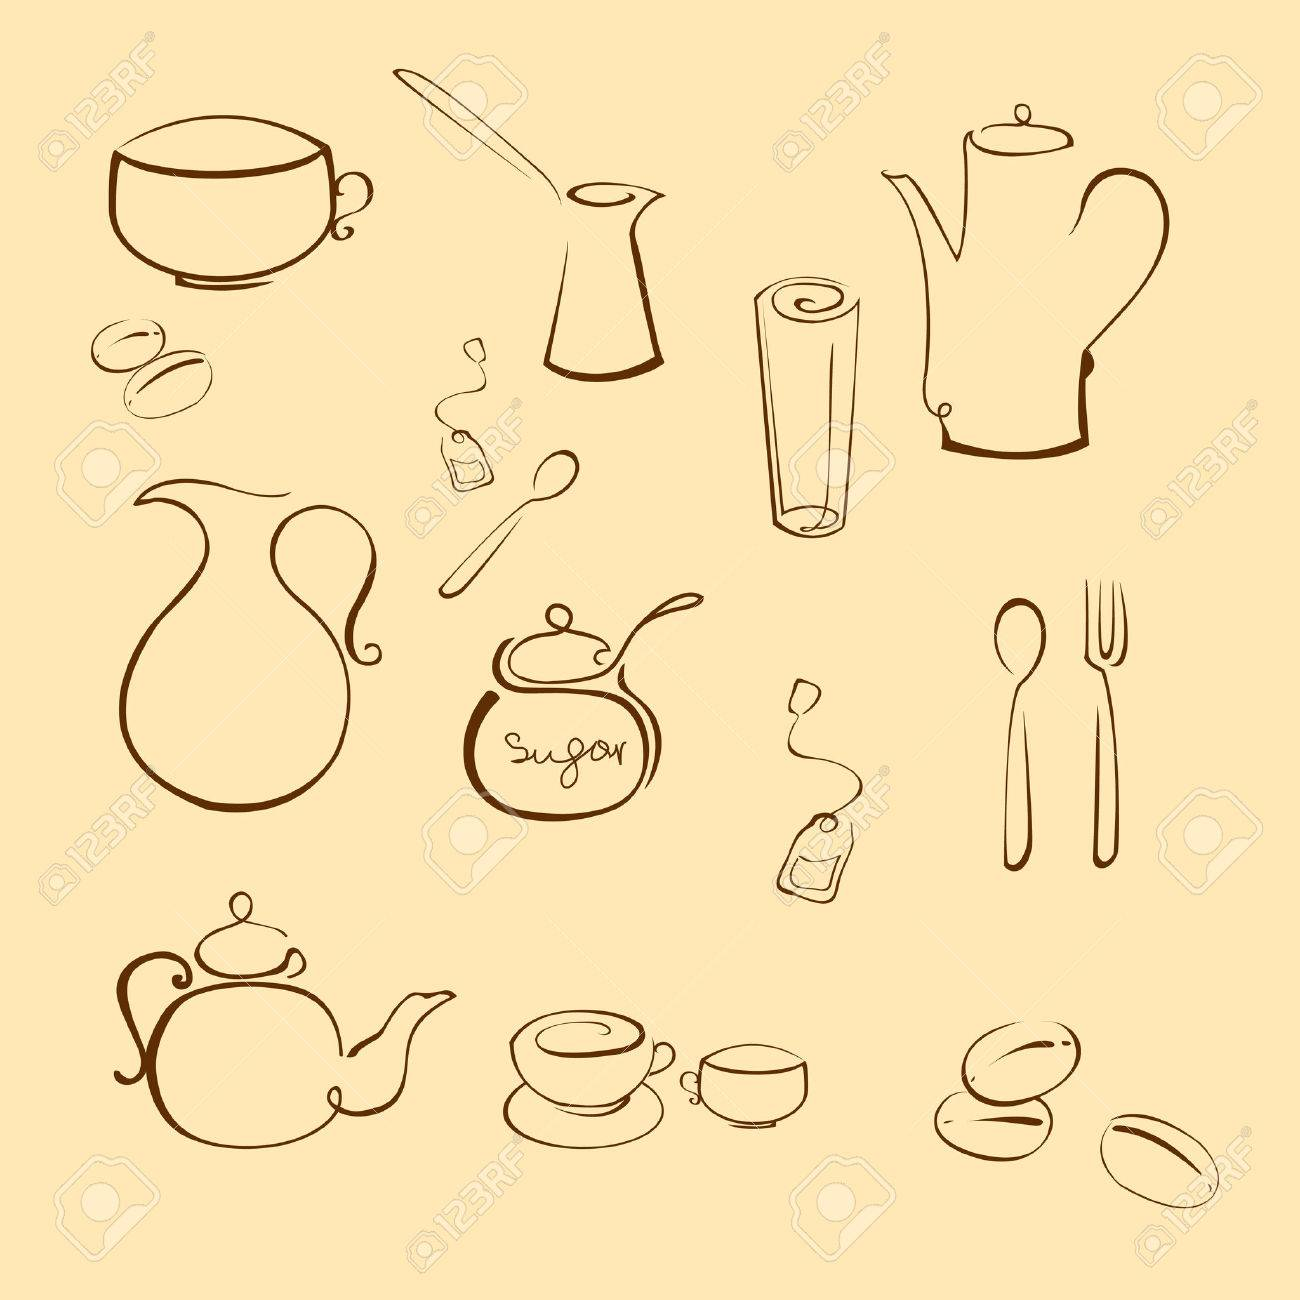 Vector illustraition of kitchen utensil Design Set made with simple line only Stock Vector - 4703608